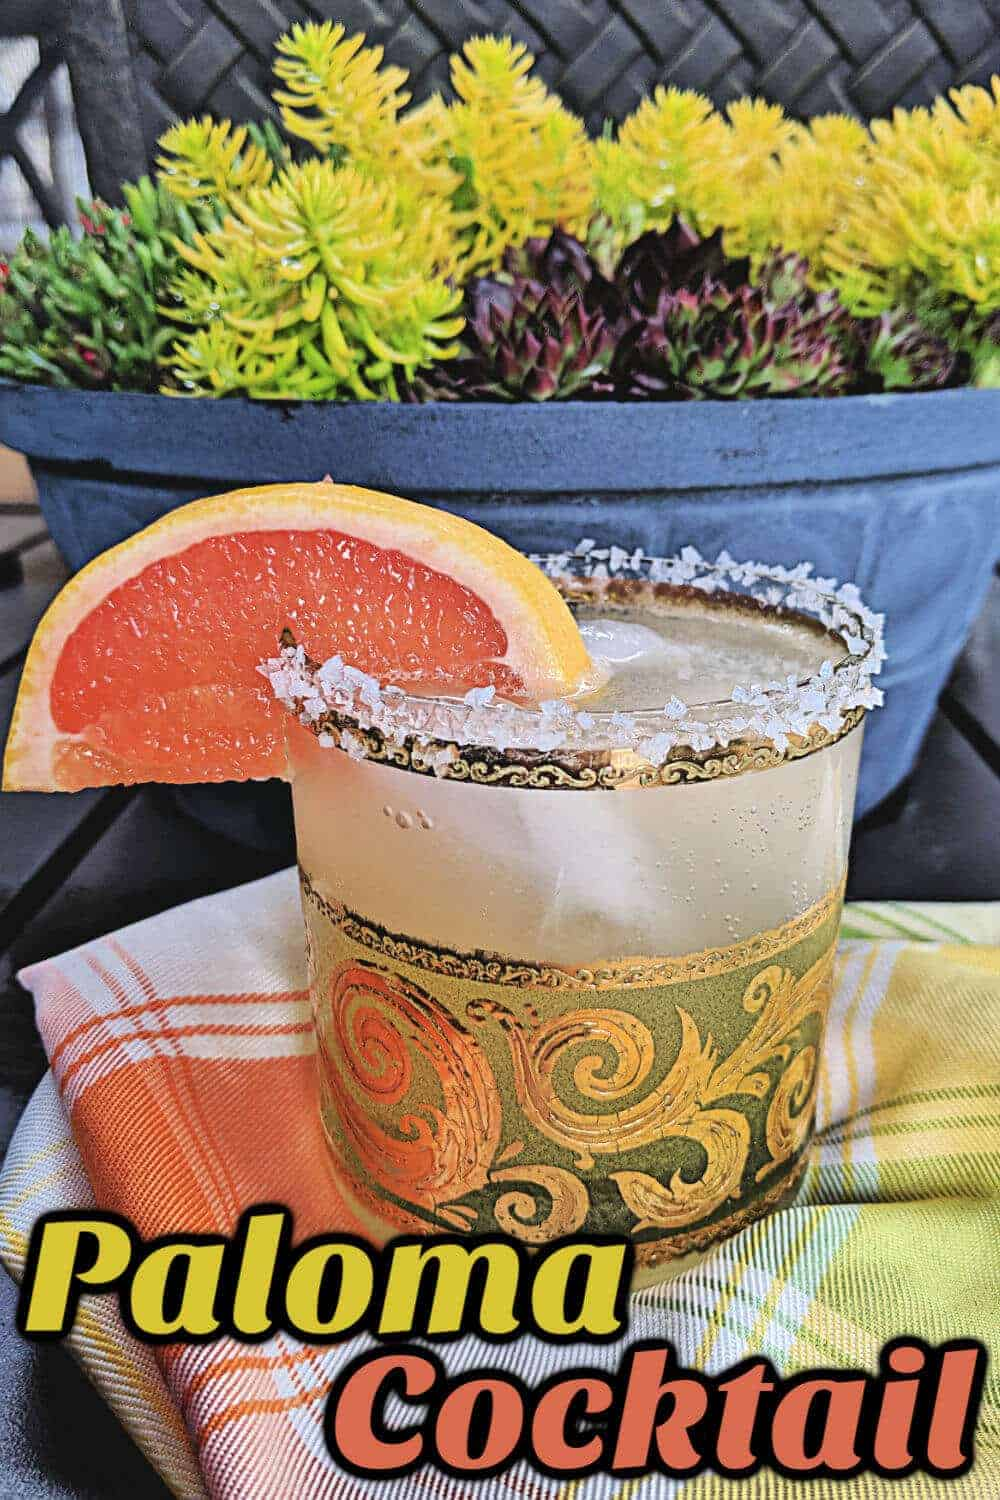 Paloma Cocktail #paloma #cocktail #grapefruit #tequila #drink